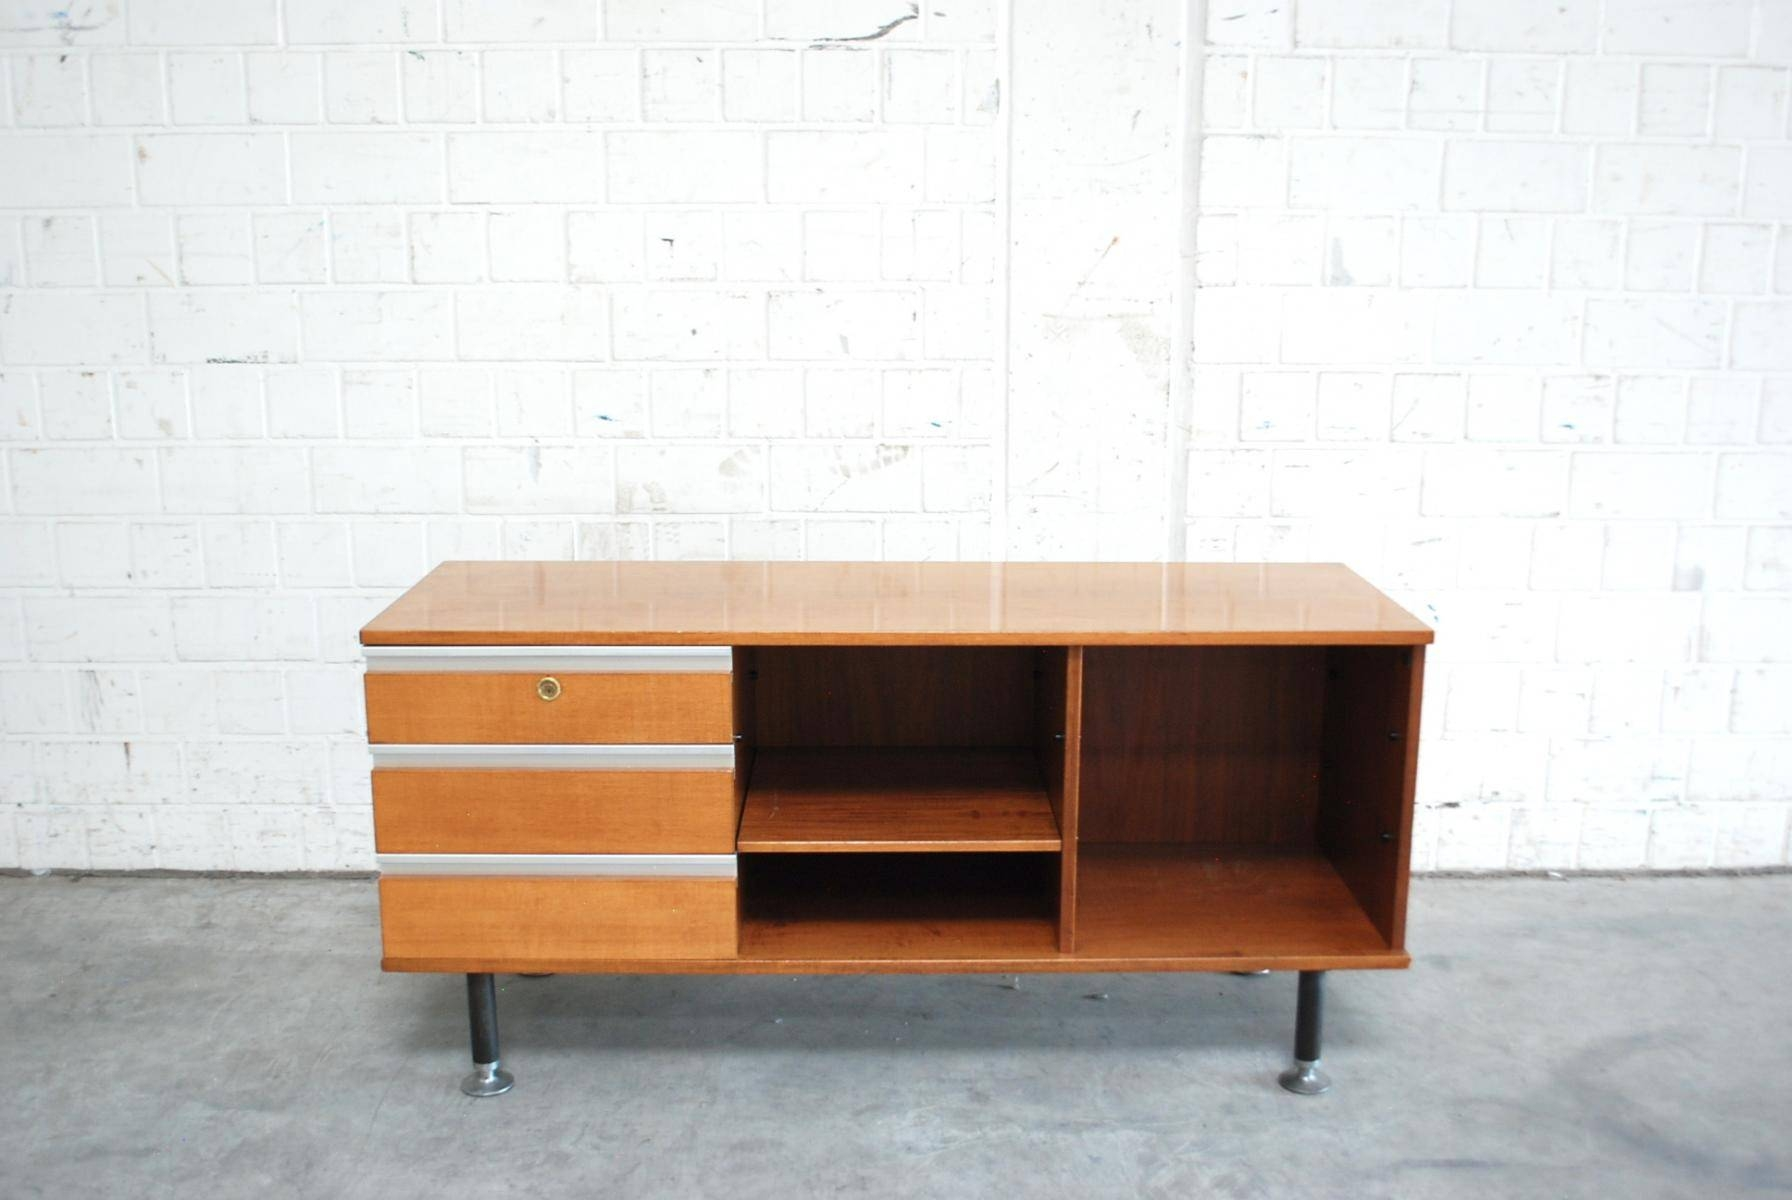 Mid Century Sideboardico Parisi For Mim For Sale At Pamono With Mid Century Sideboards (#11 of 15)